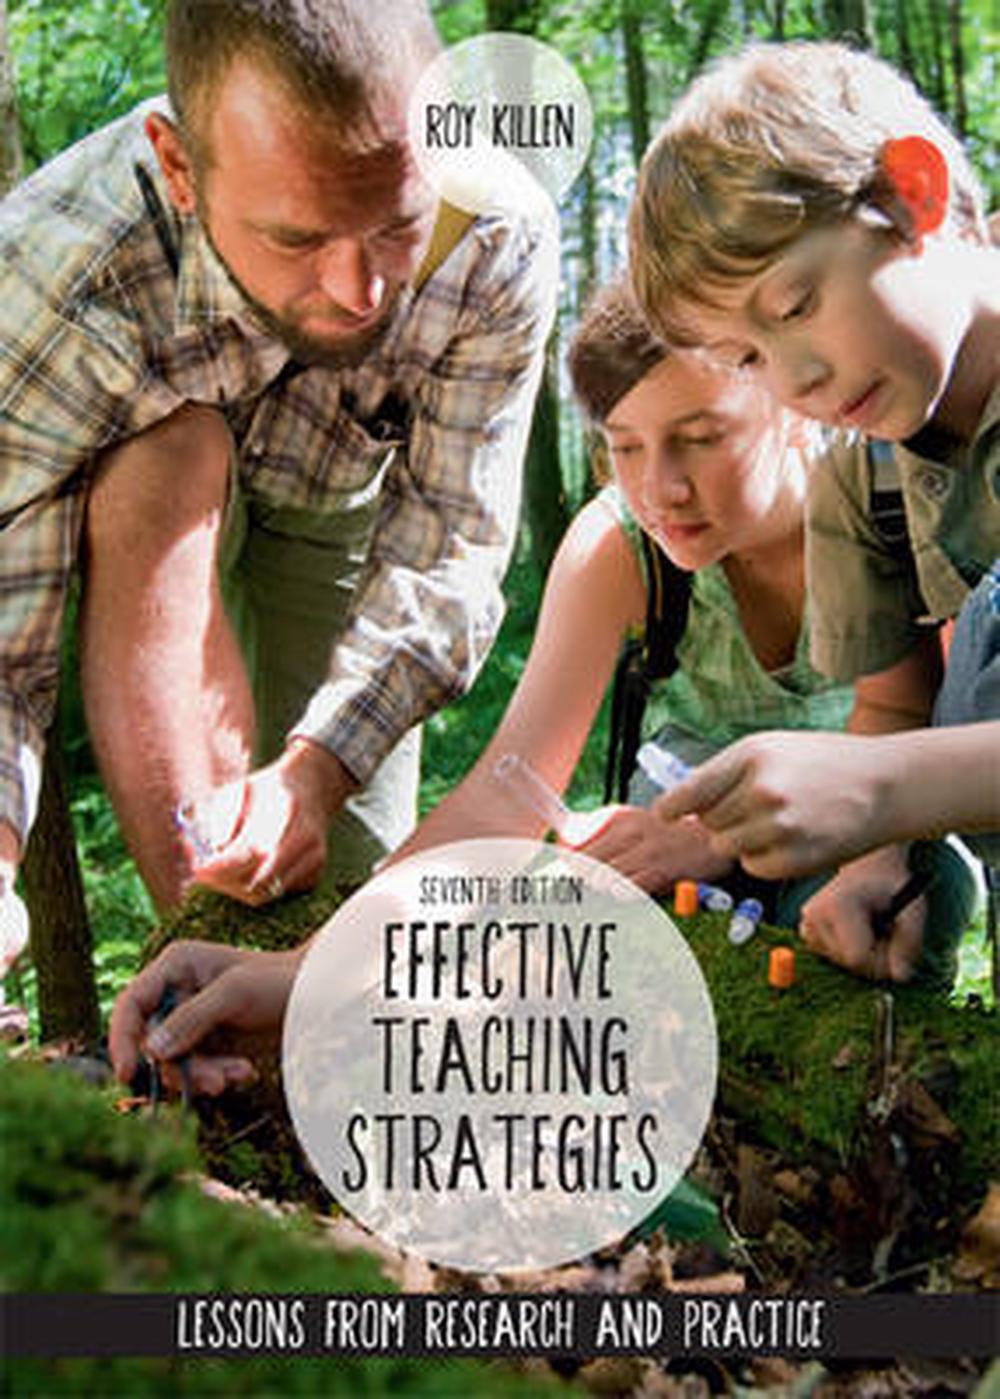 Effective Teaching Strategies: Lessons from Research and Practice, 7th Edition